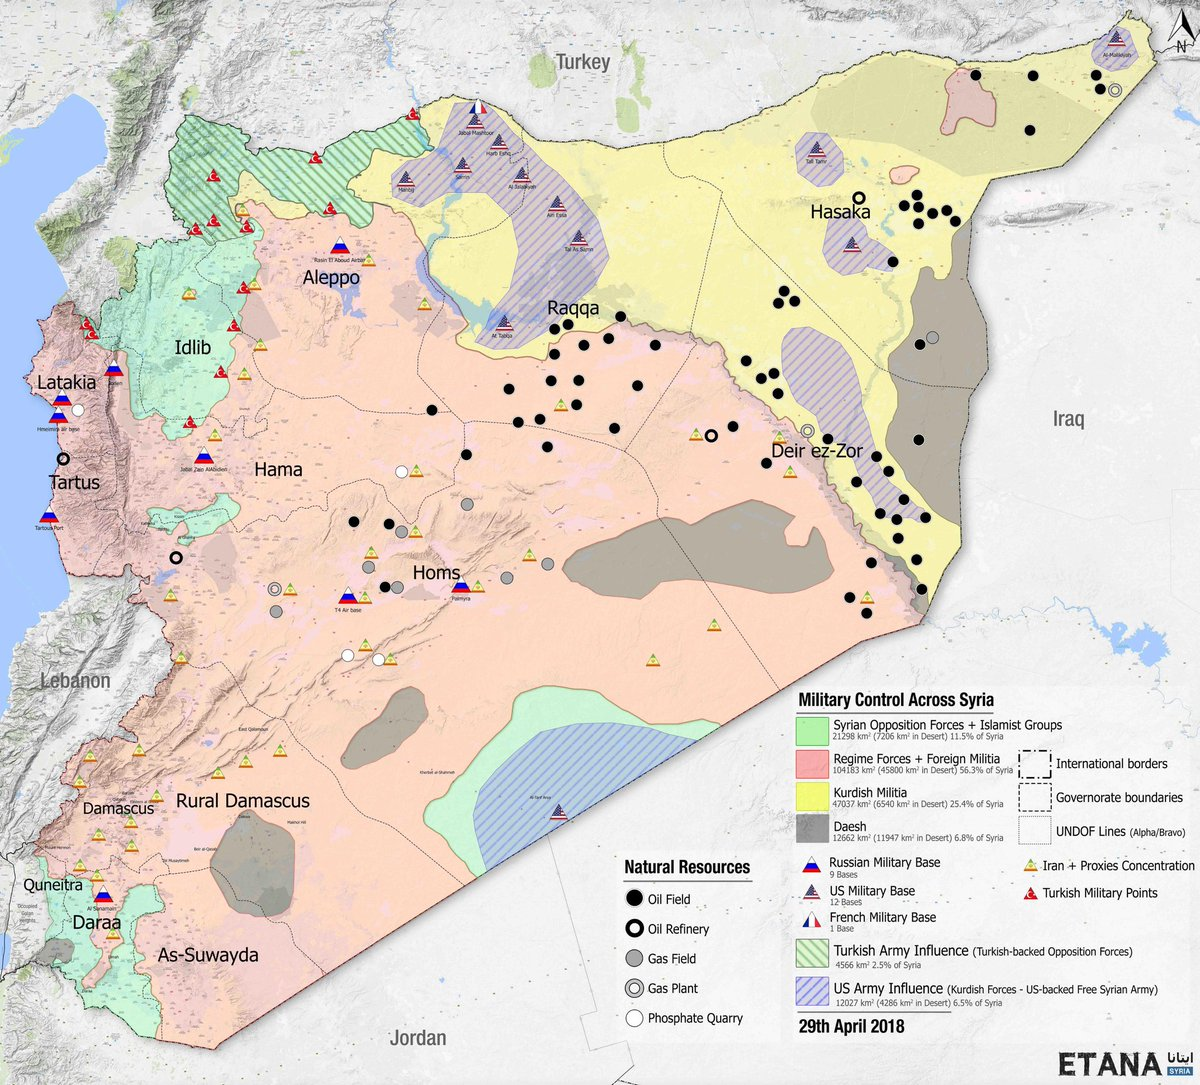 Smm Syria On Twitter Excellent Reference Map Of Syria Showing - Us-oil-fields-map